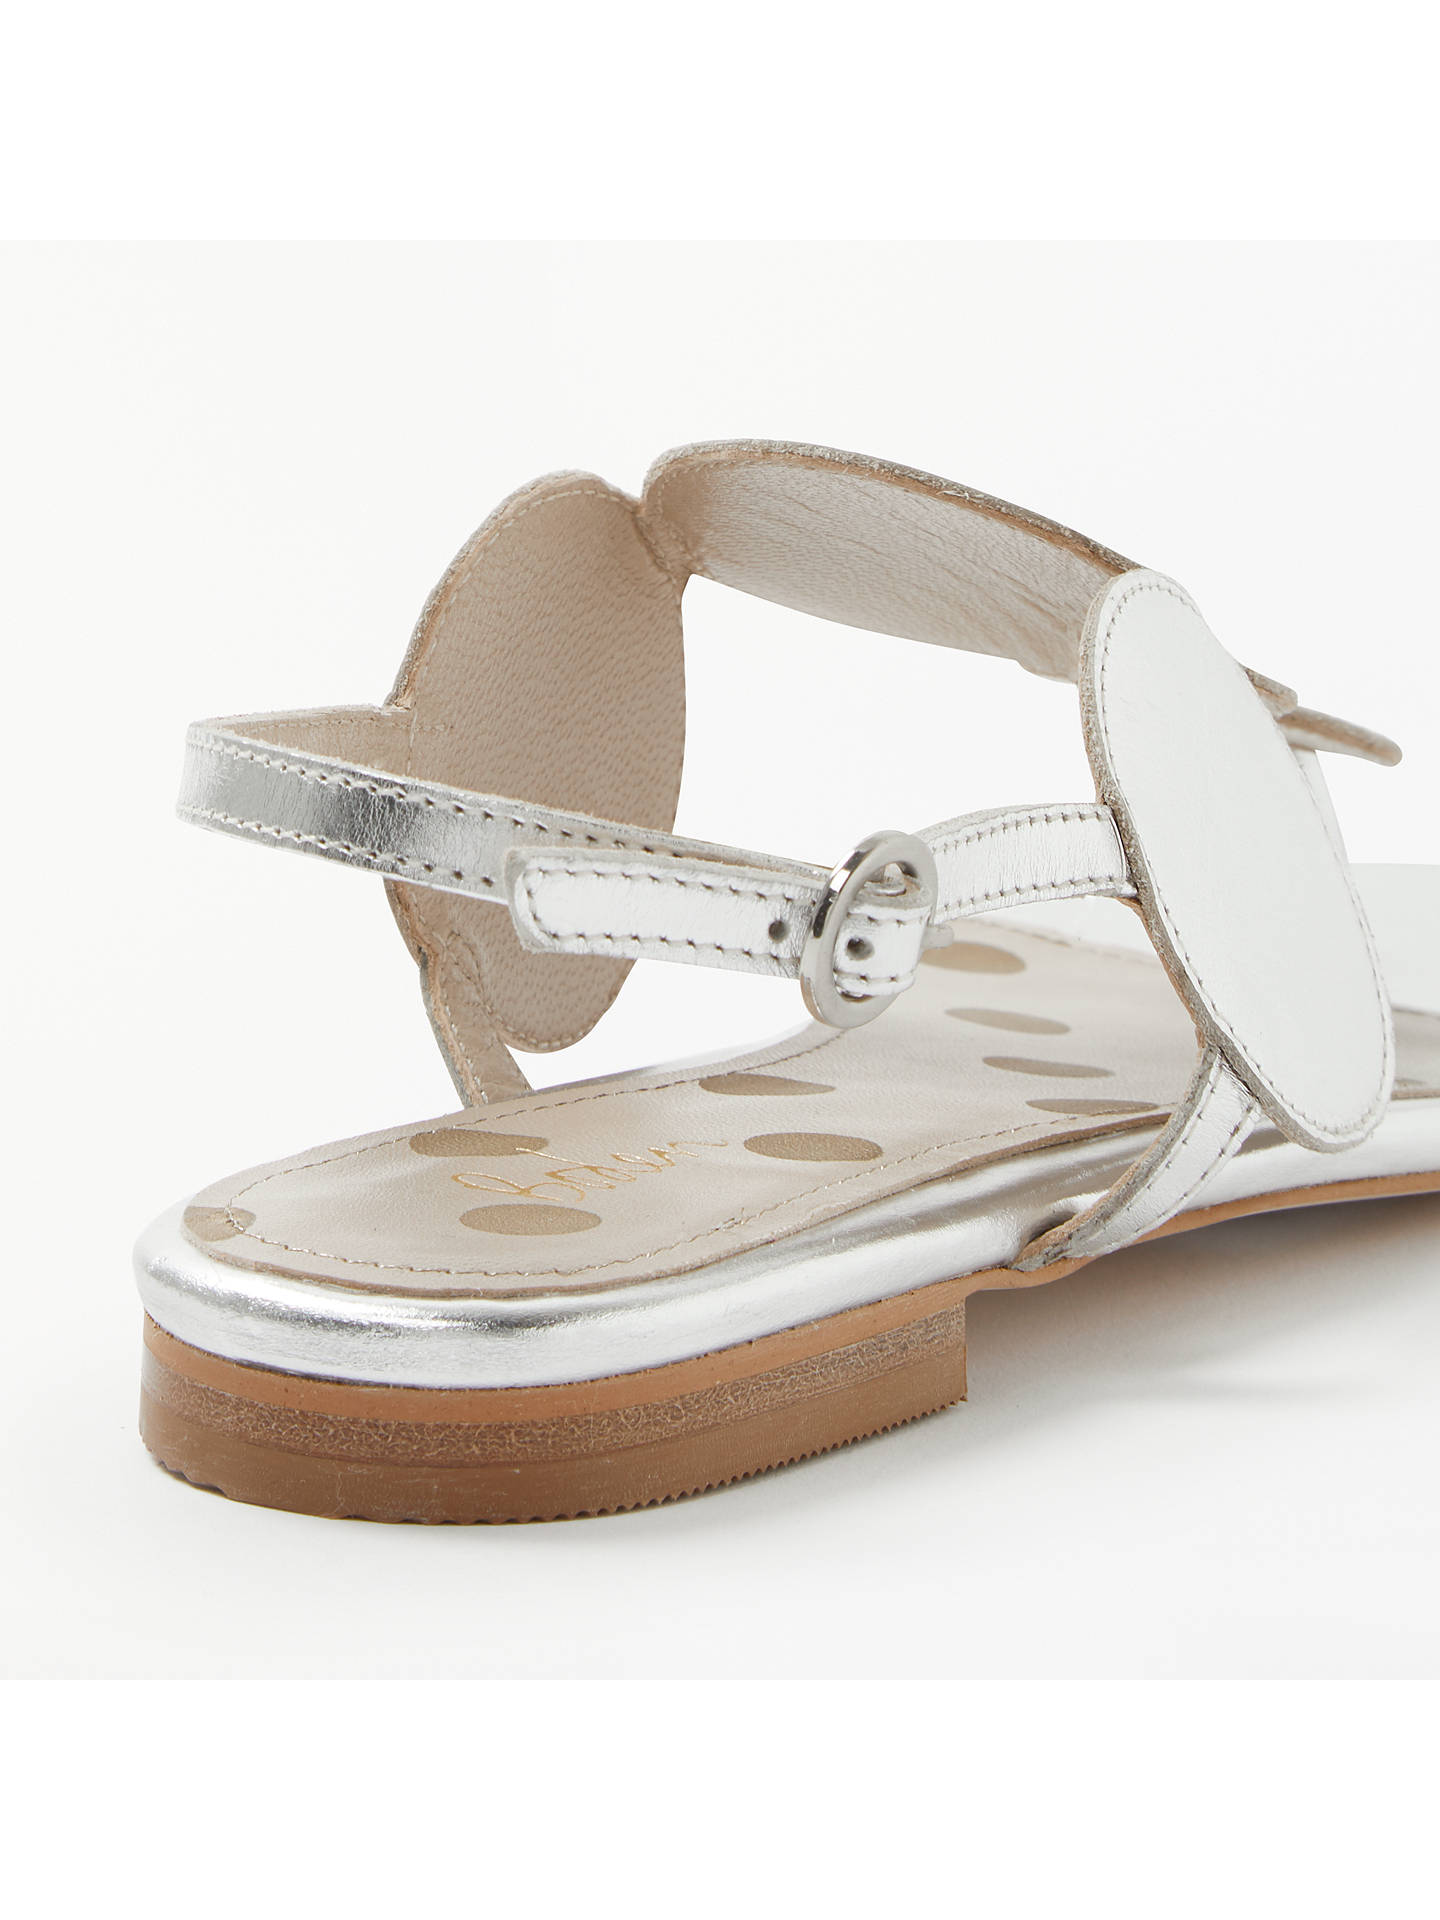 BuyBoden Aubry Toe-Post Sandals, Metallic Leather, 5 Online at johnlewis.com